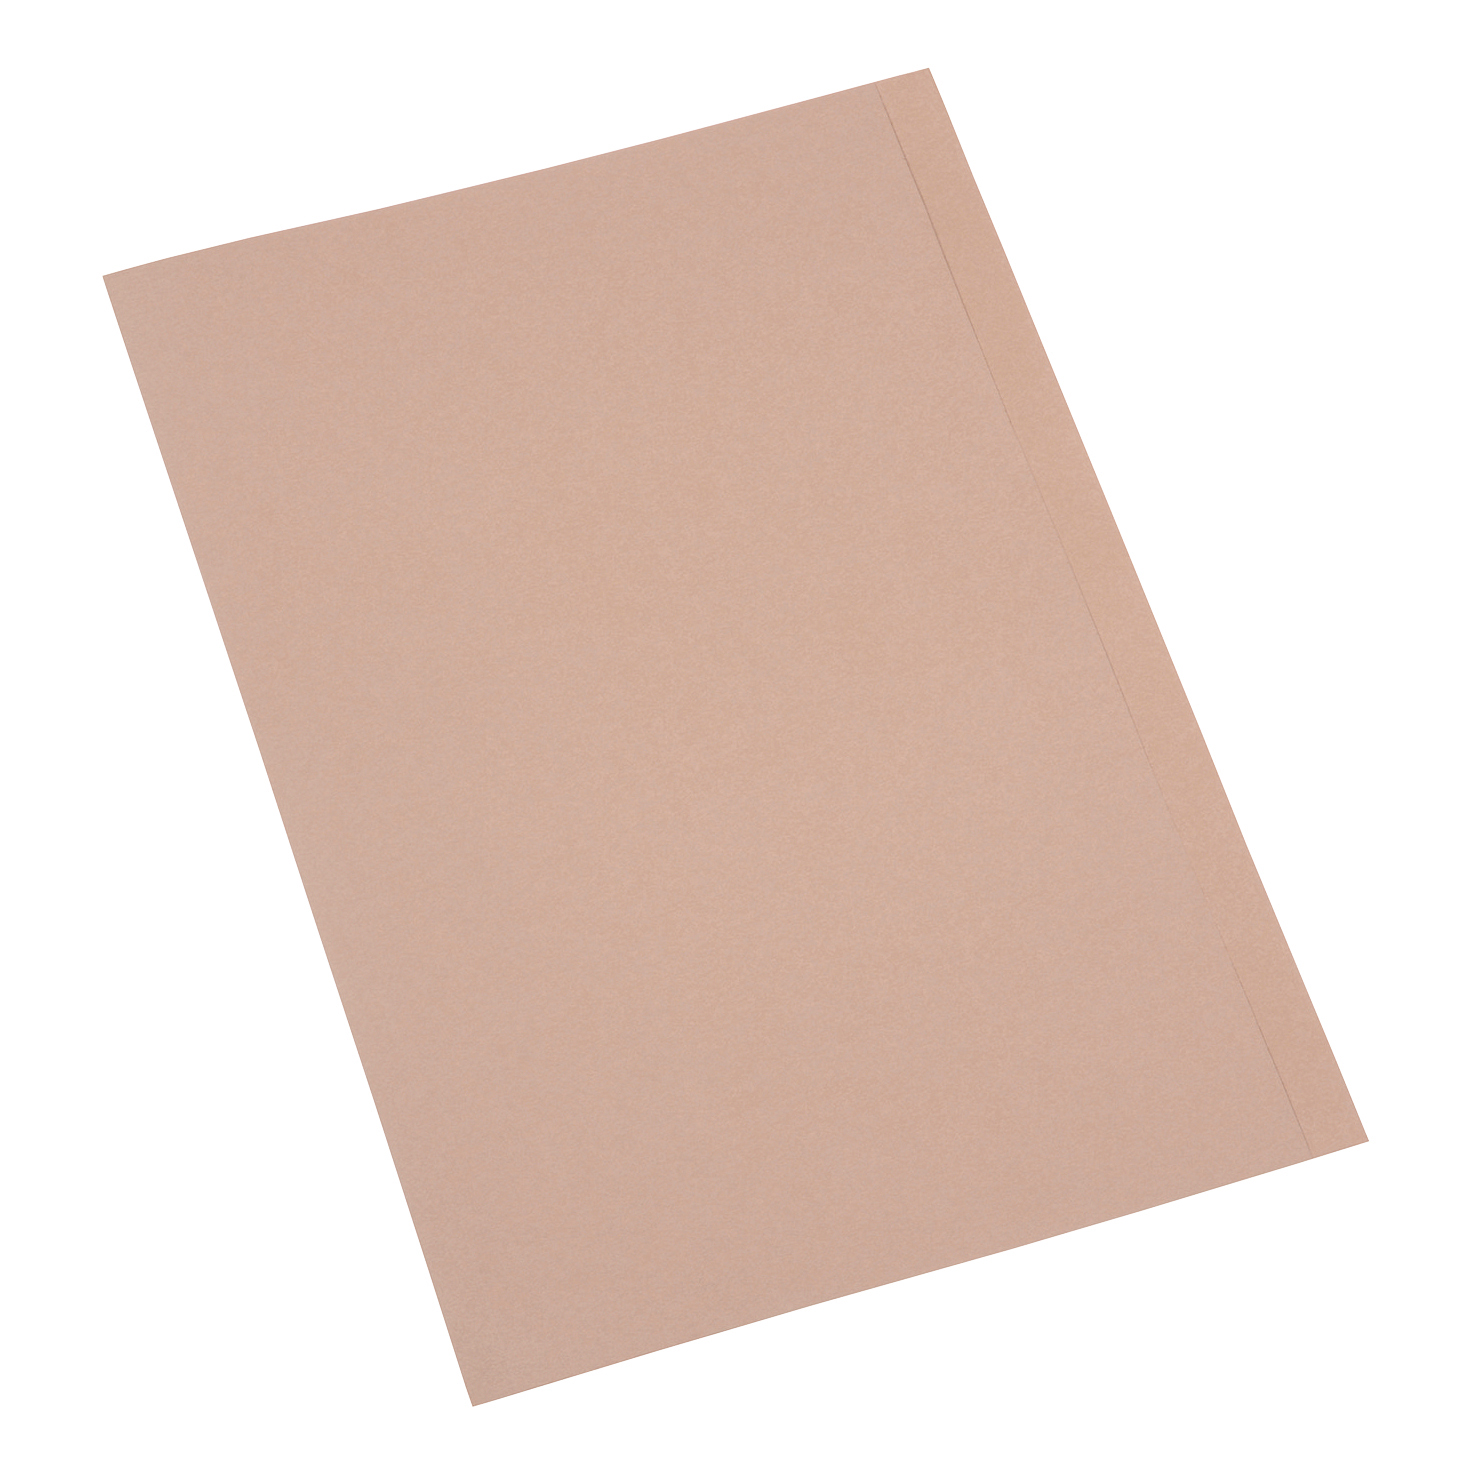 Square Cut Folders 5 Star Eco Kraft Square Cut Folders 170gsm A4 Recycled Buff Pack 100